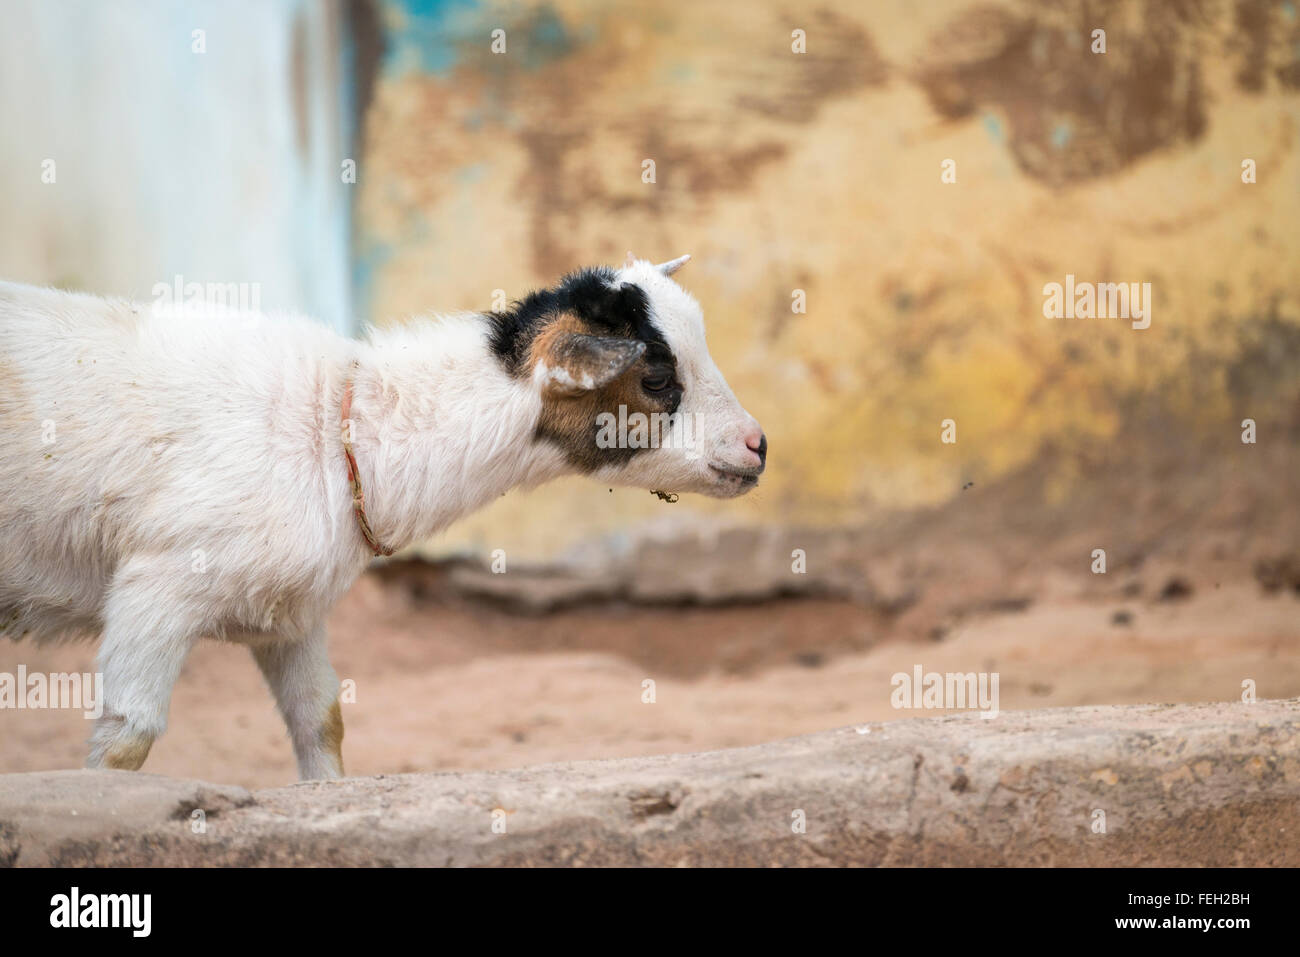 A baby goat in a Guinea Bissau village - Stock Image